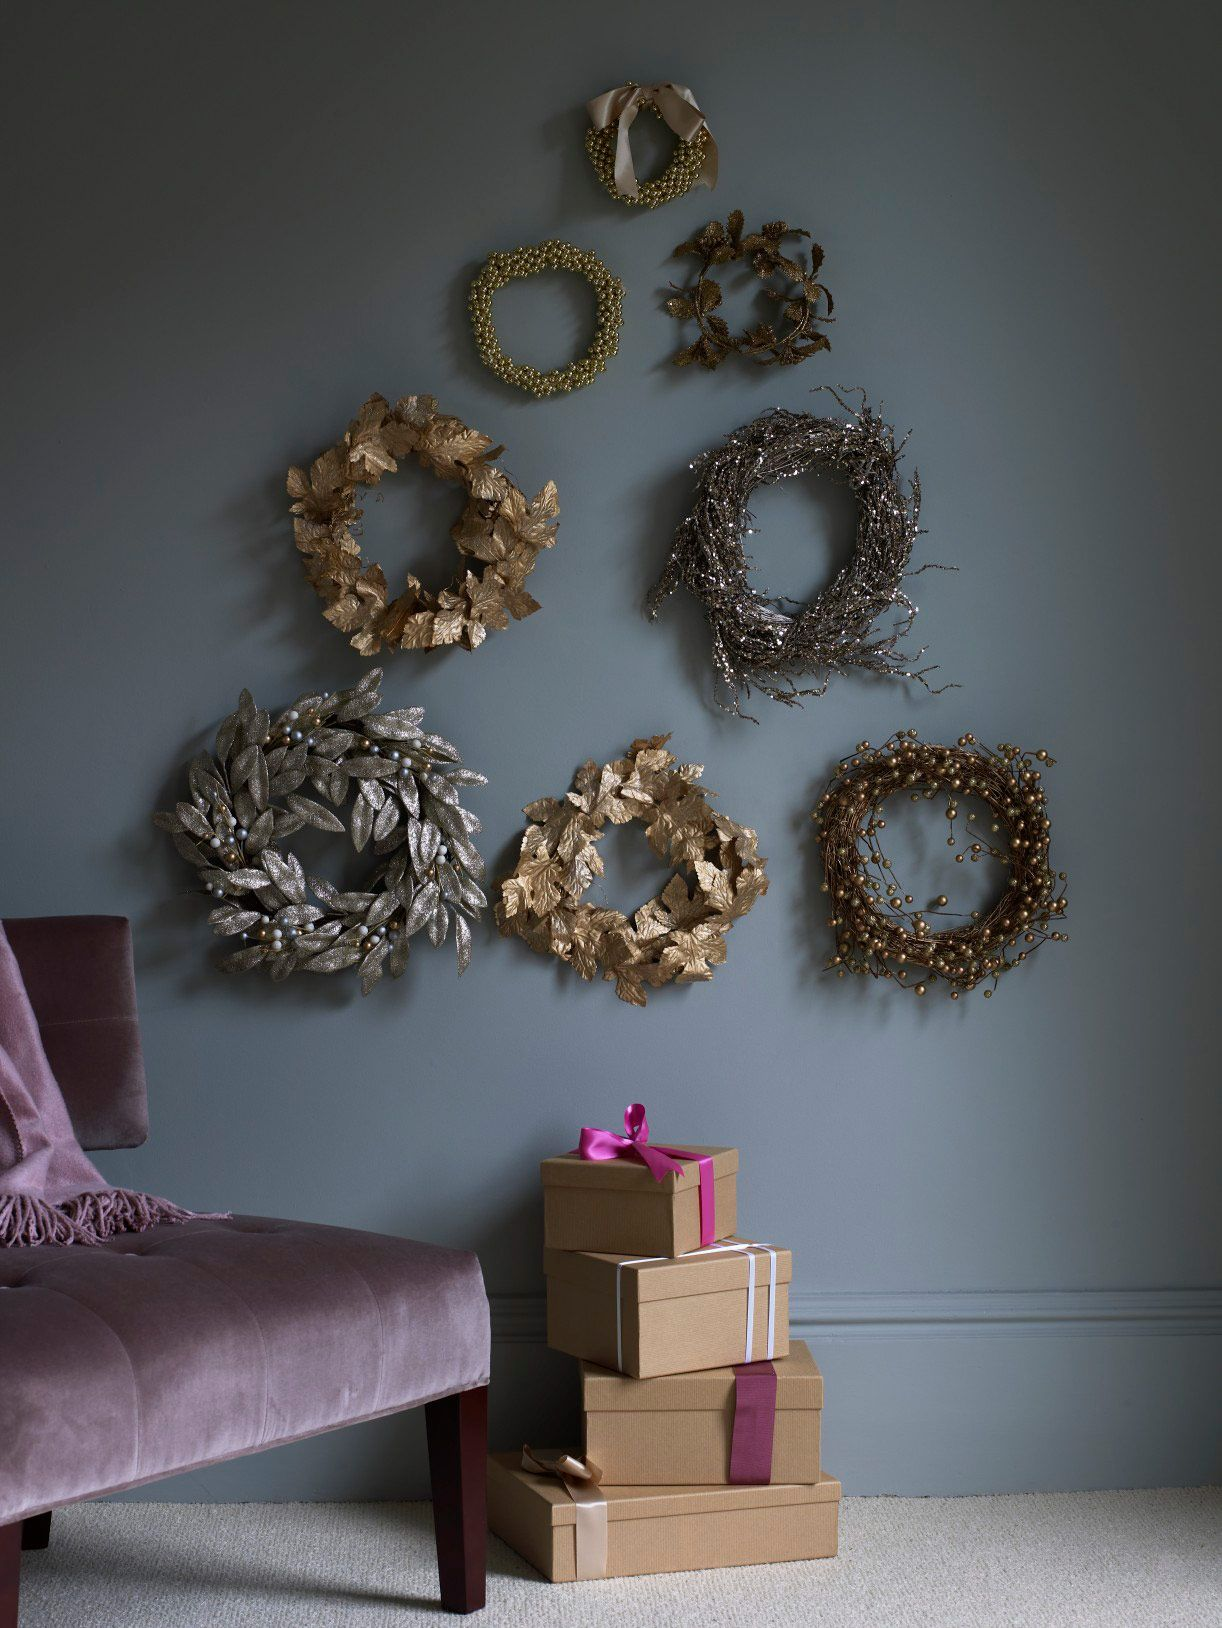 Garlands can be made into wreaths and arranged to resemble a Christmas tree. Homes & Gardens January 2011. Photographer Carolyn Barber. #Festive #ChristmasDecorations